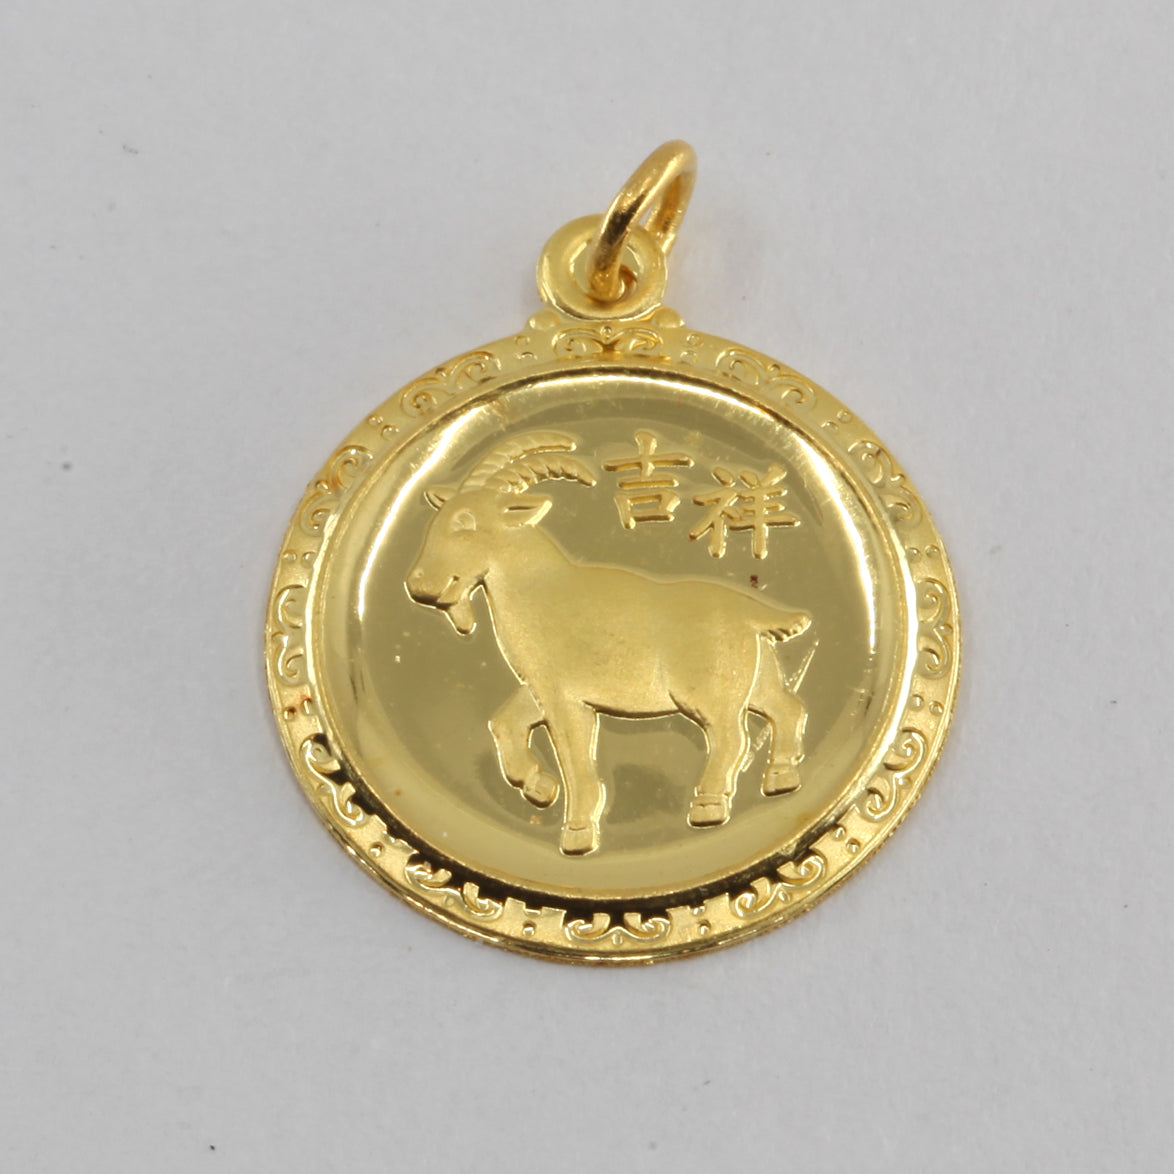 24K Solid Yellow Gold Round Zodiac Sheep Goat Pendant 3.7 Grams